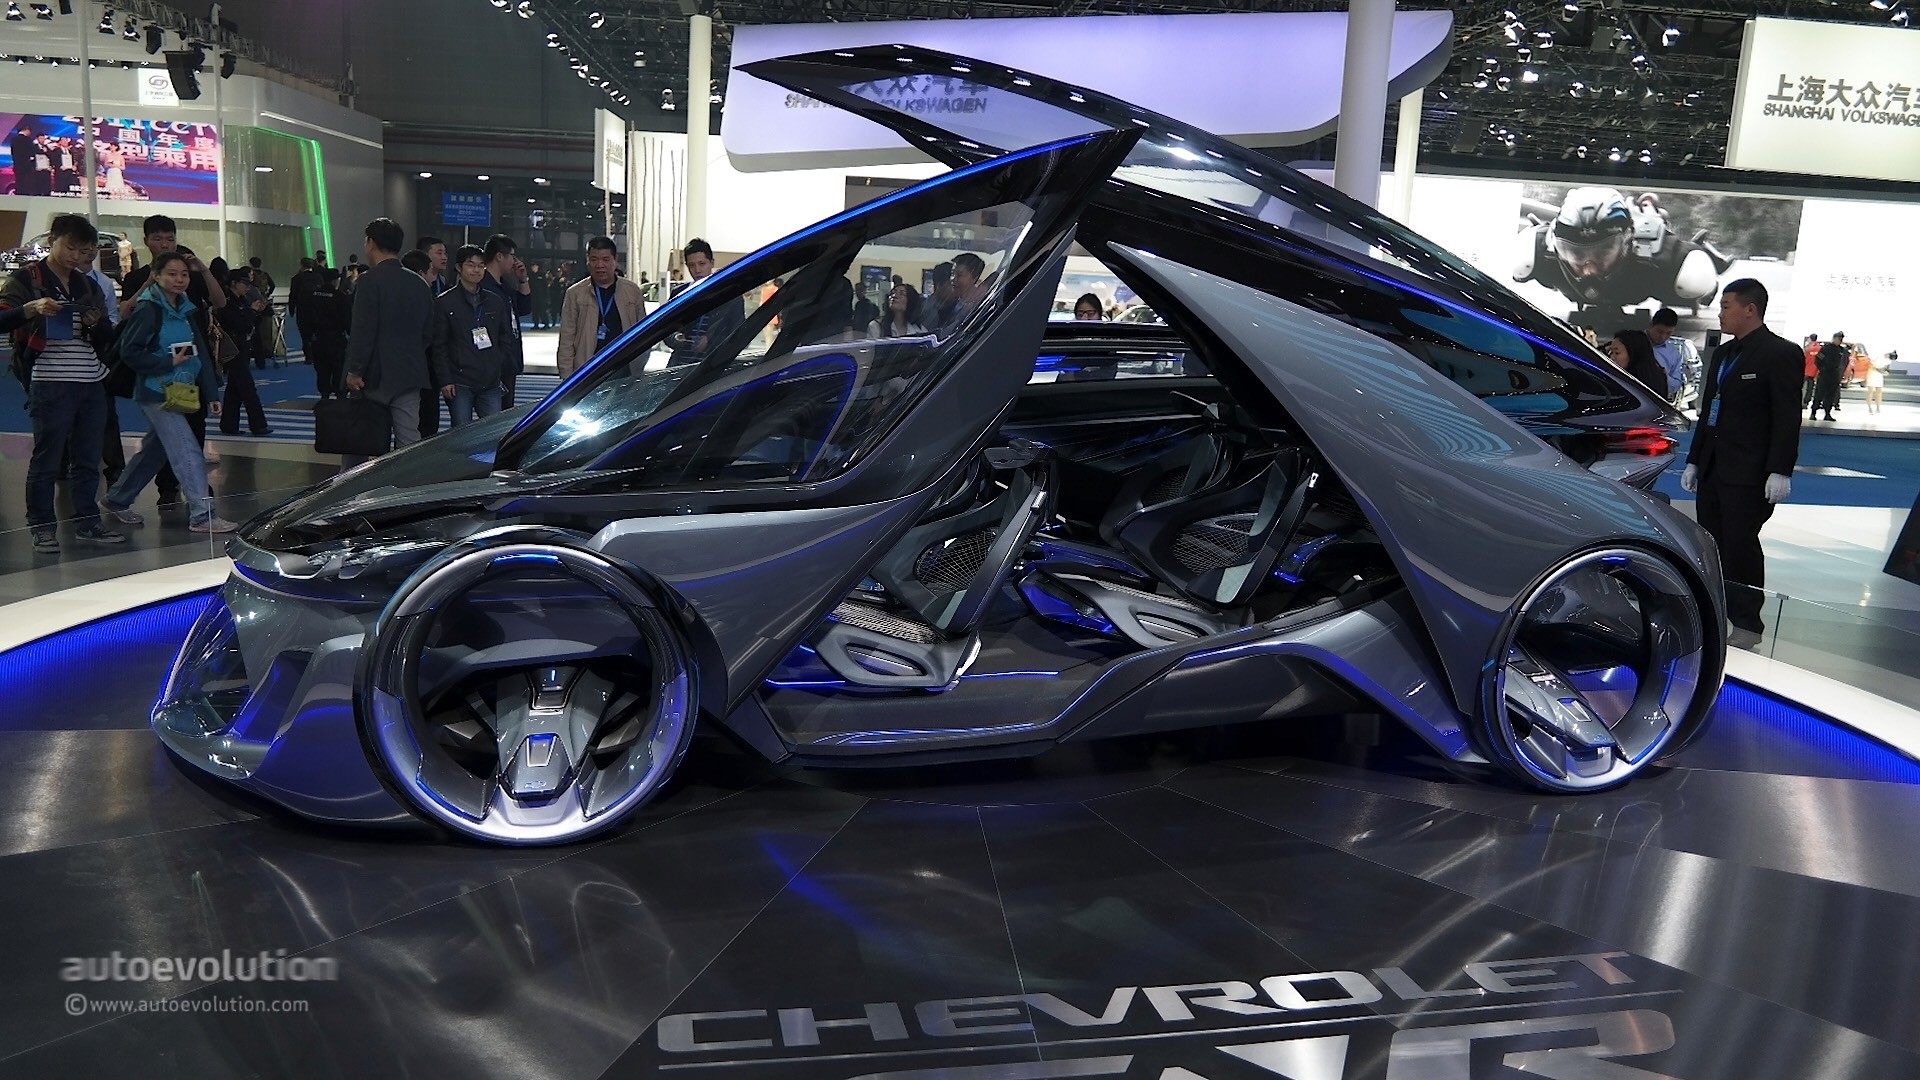 Chevrolet Fnr Proves Alien Technology Exists On Earth Live Photos on 2016 Camaro Concept Car